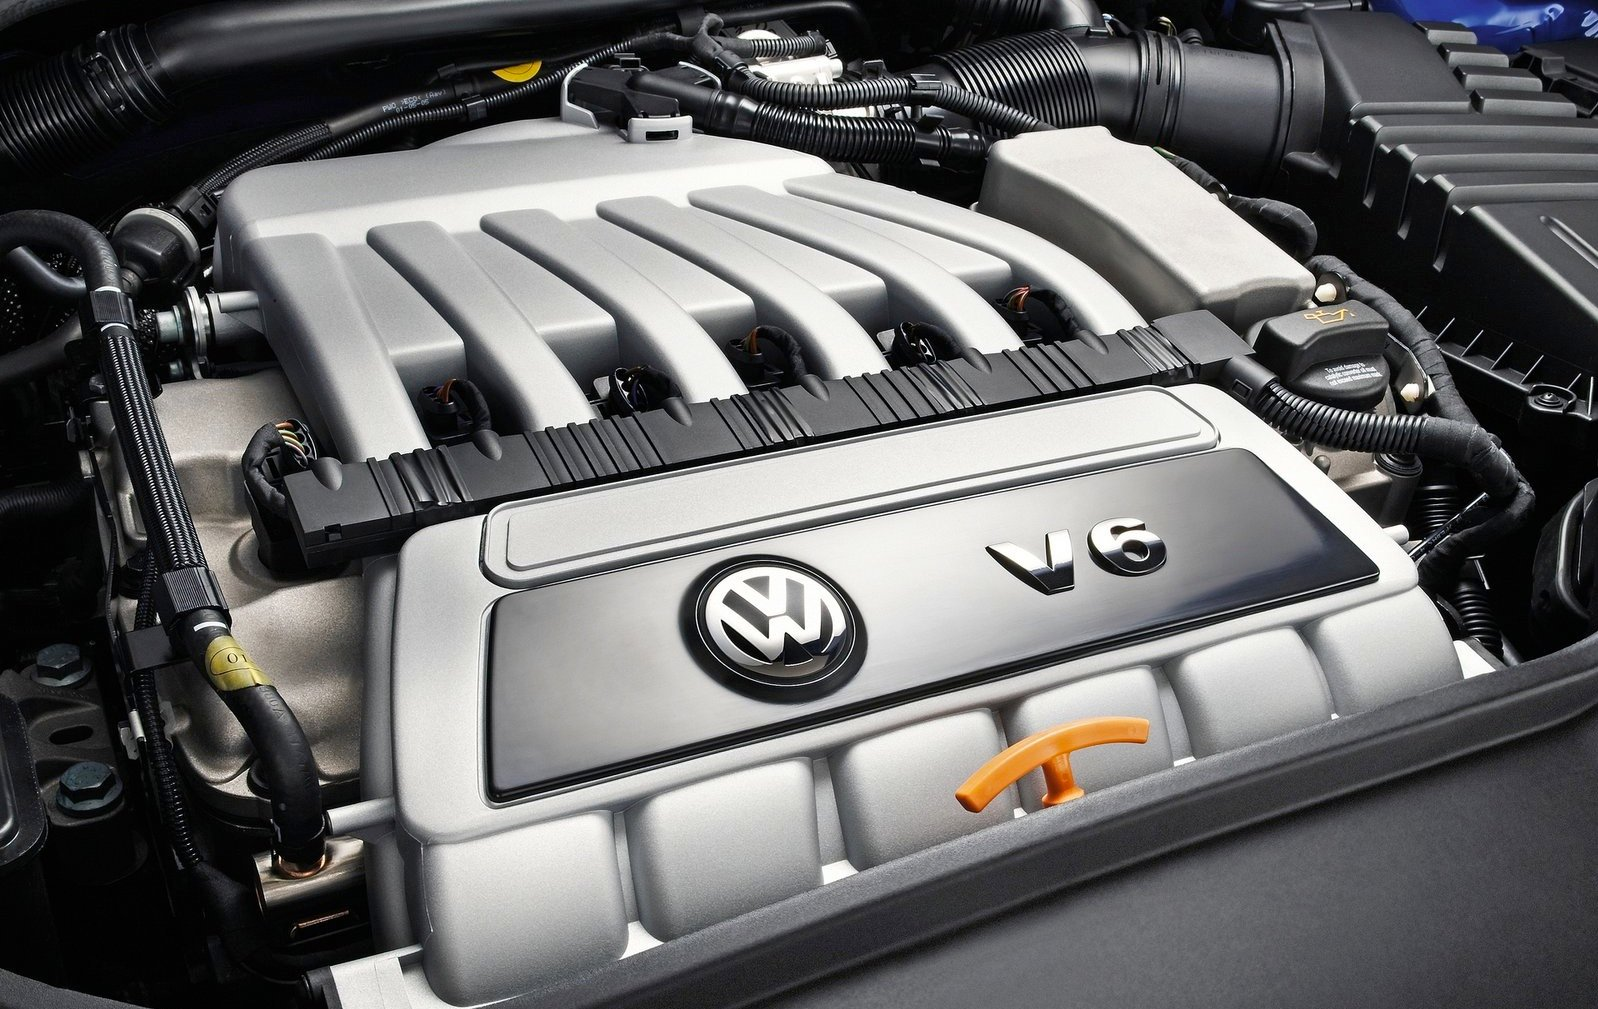 volkswagen developing turbocharged vr6 engine replacement. Black Bedroom Furniture Sets. Home Design Ideas